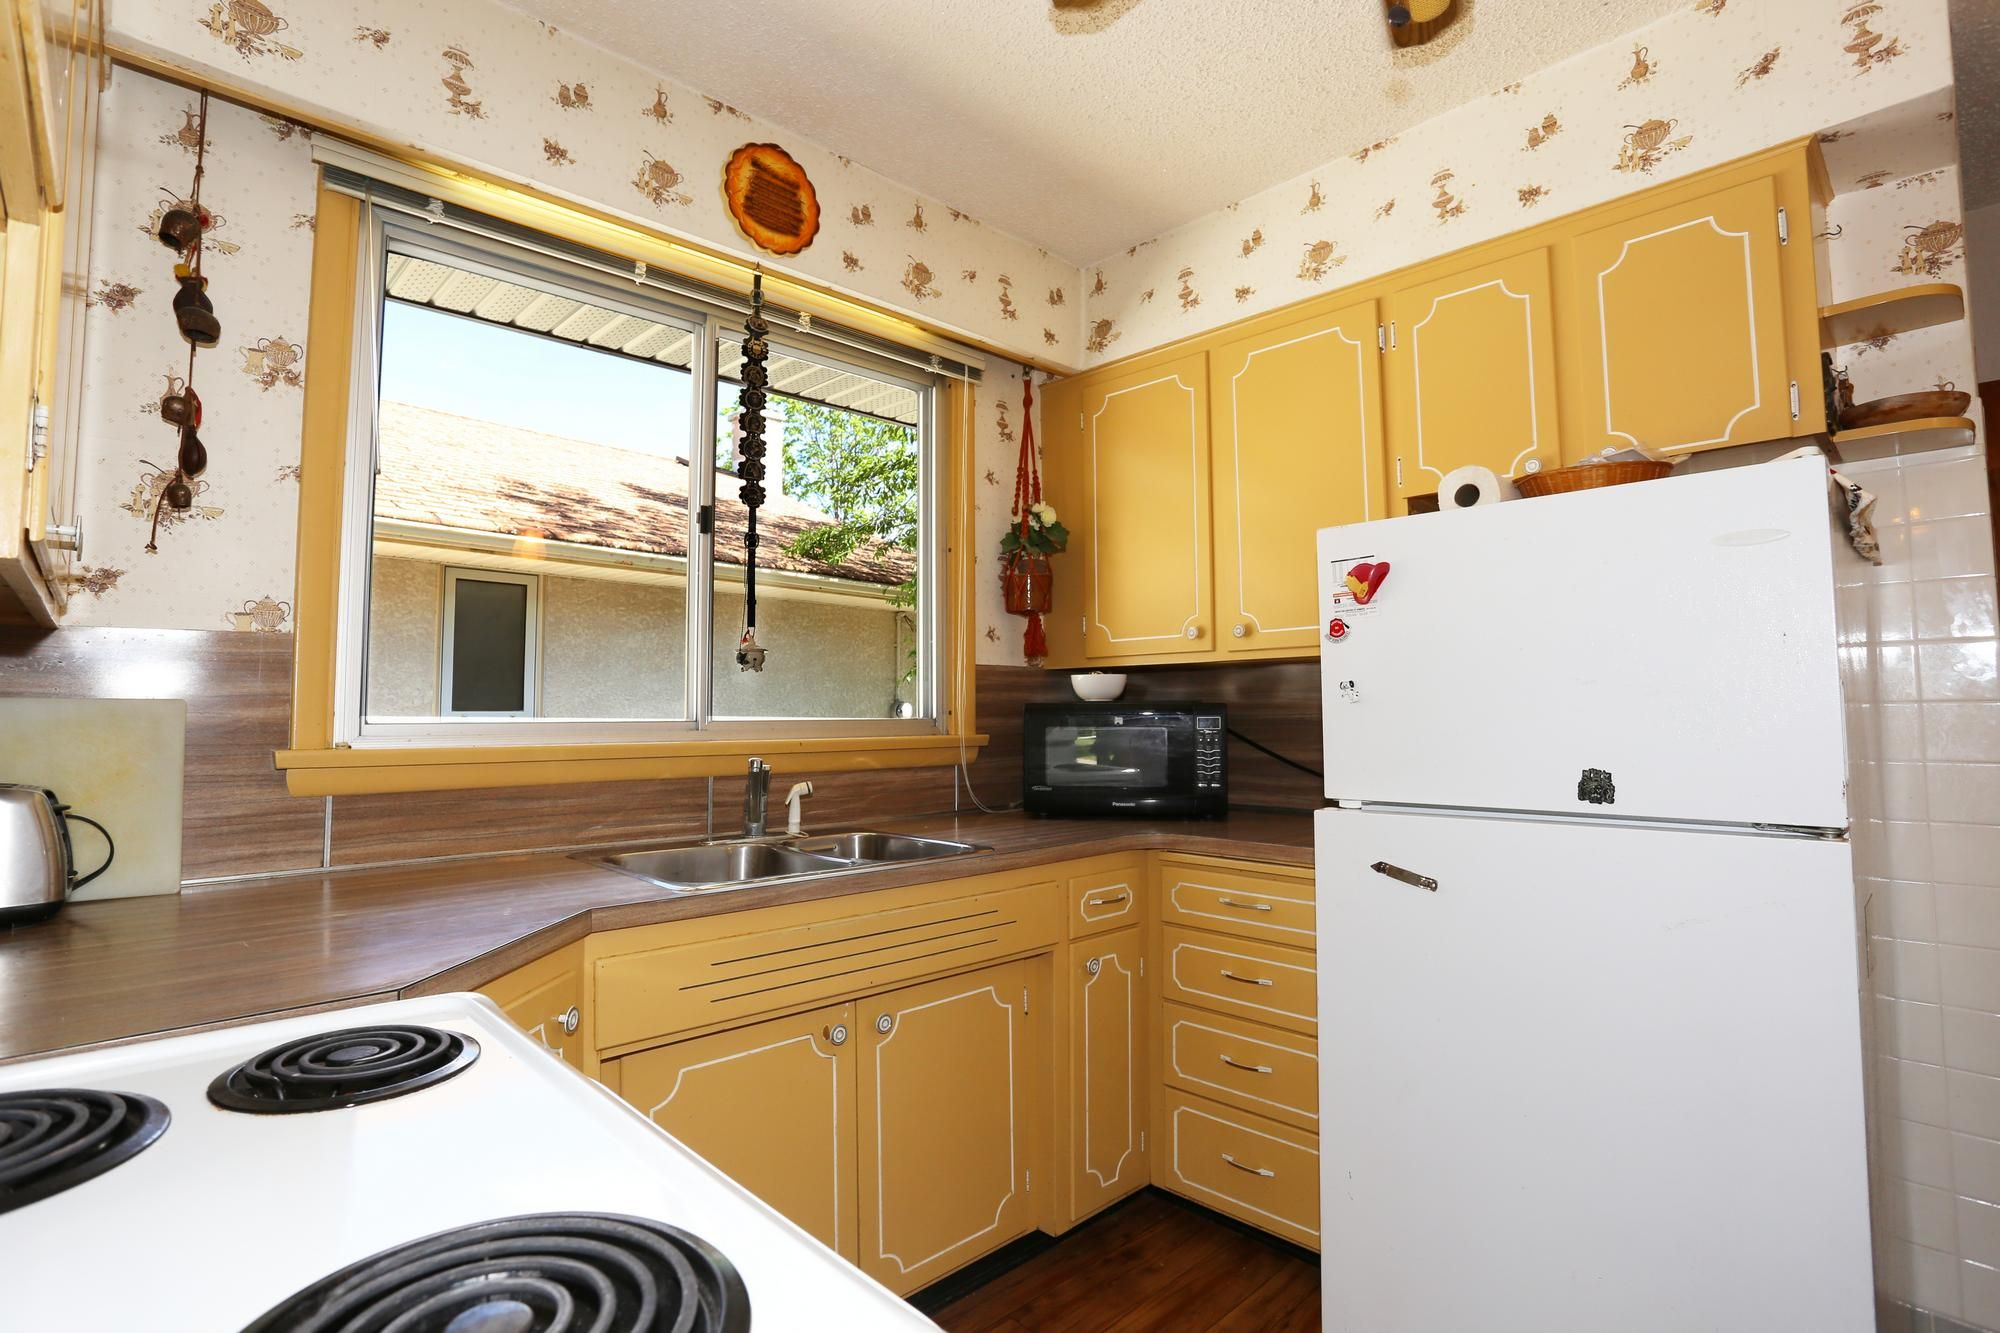 Photo 9: Photos: 1320 Valour Road in Winnipeg: West End Single Family Detached for sale (5C)  : MLS®# 1816744